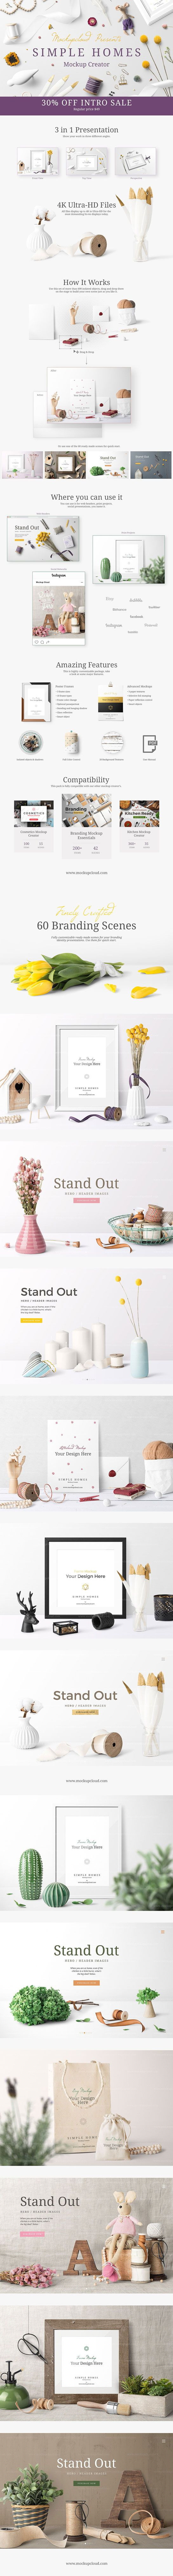 Simple Homes Mockup Creator : Create premium quality images to showcase your poster frame presentations, #website headers, #Etsy, #Instagram, #Facebook or Behance projects by just dragging and dropping items in #Photoshop. #Presentation never looked so perfect.